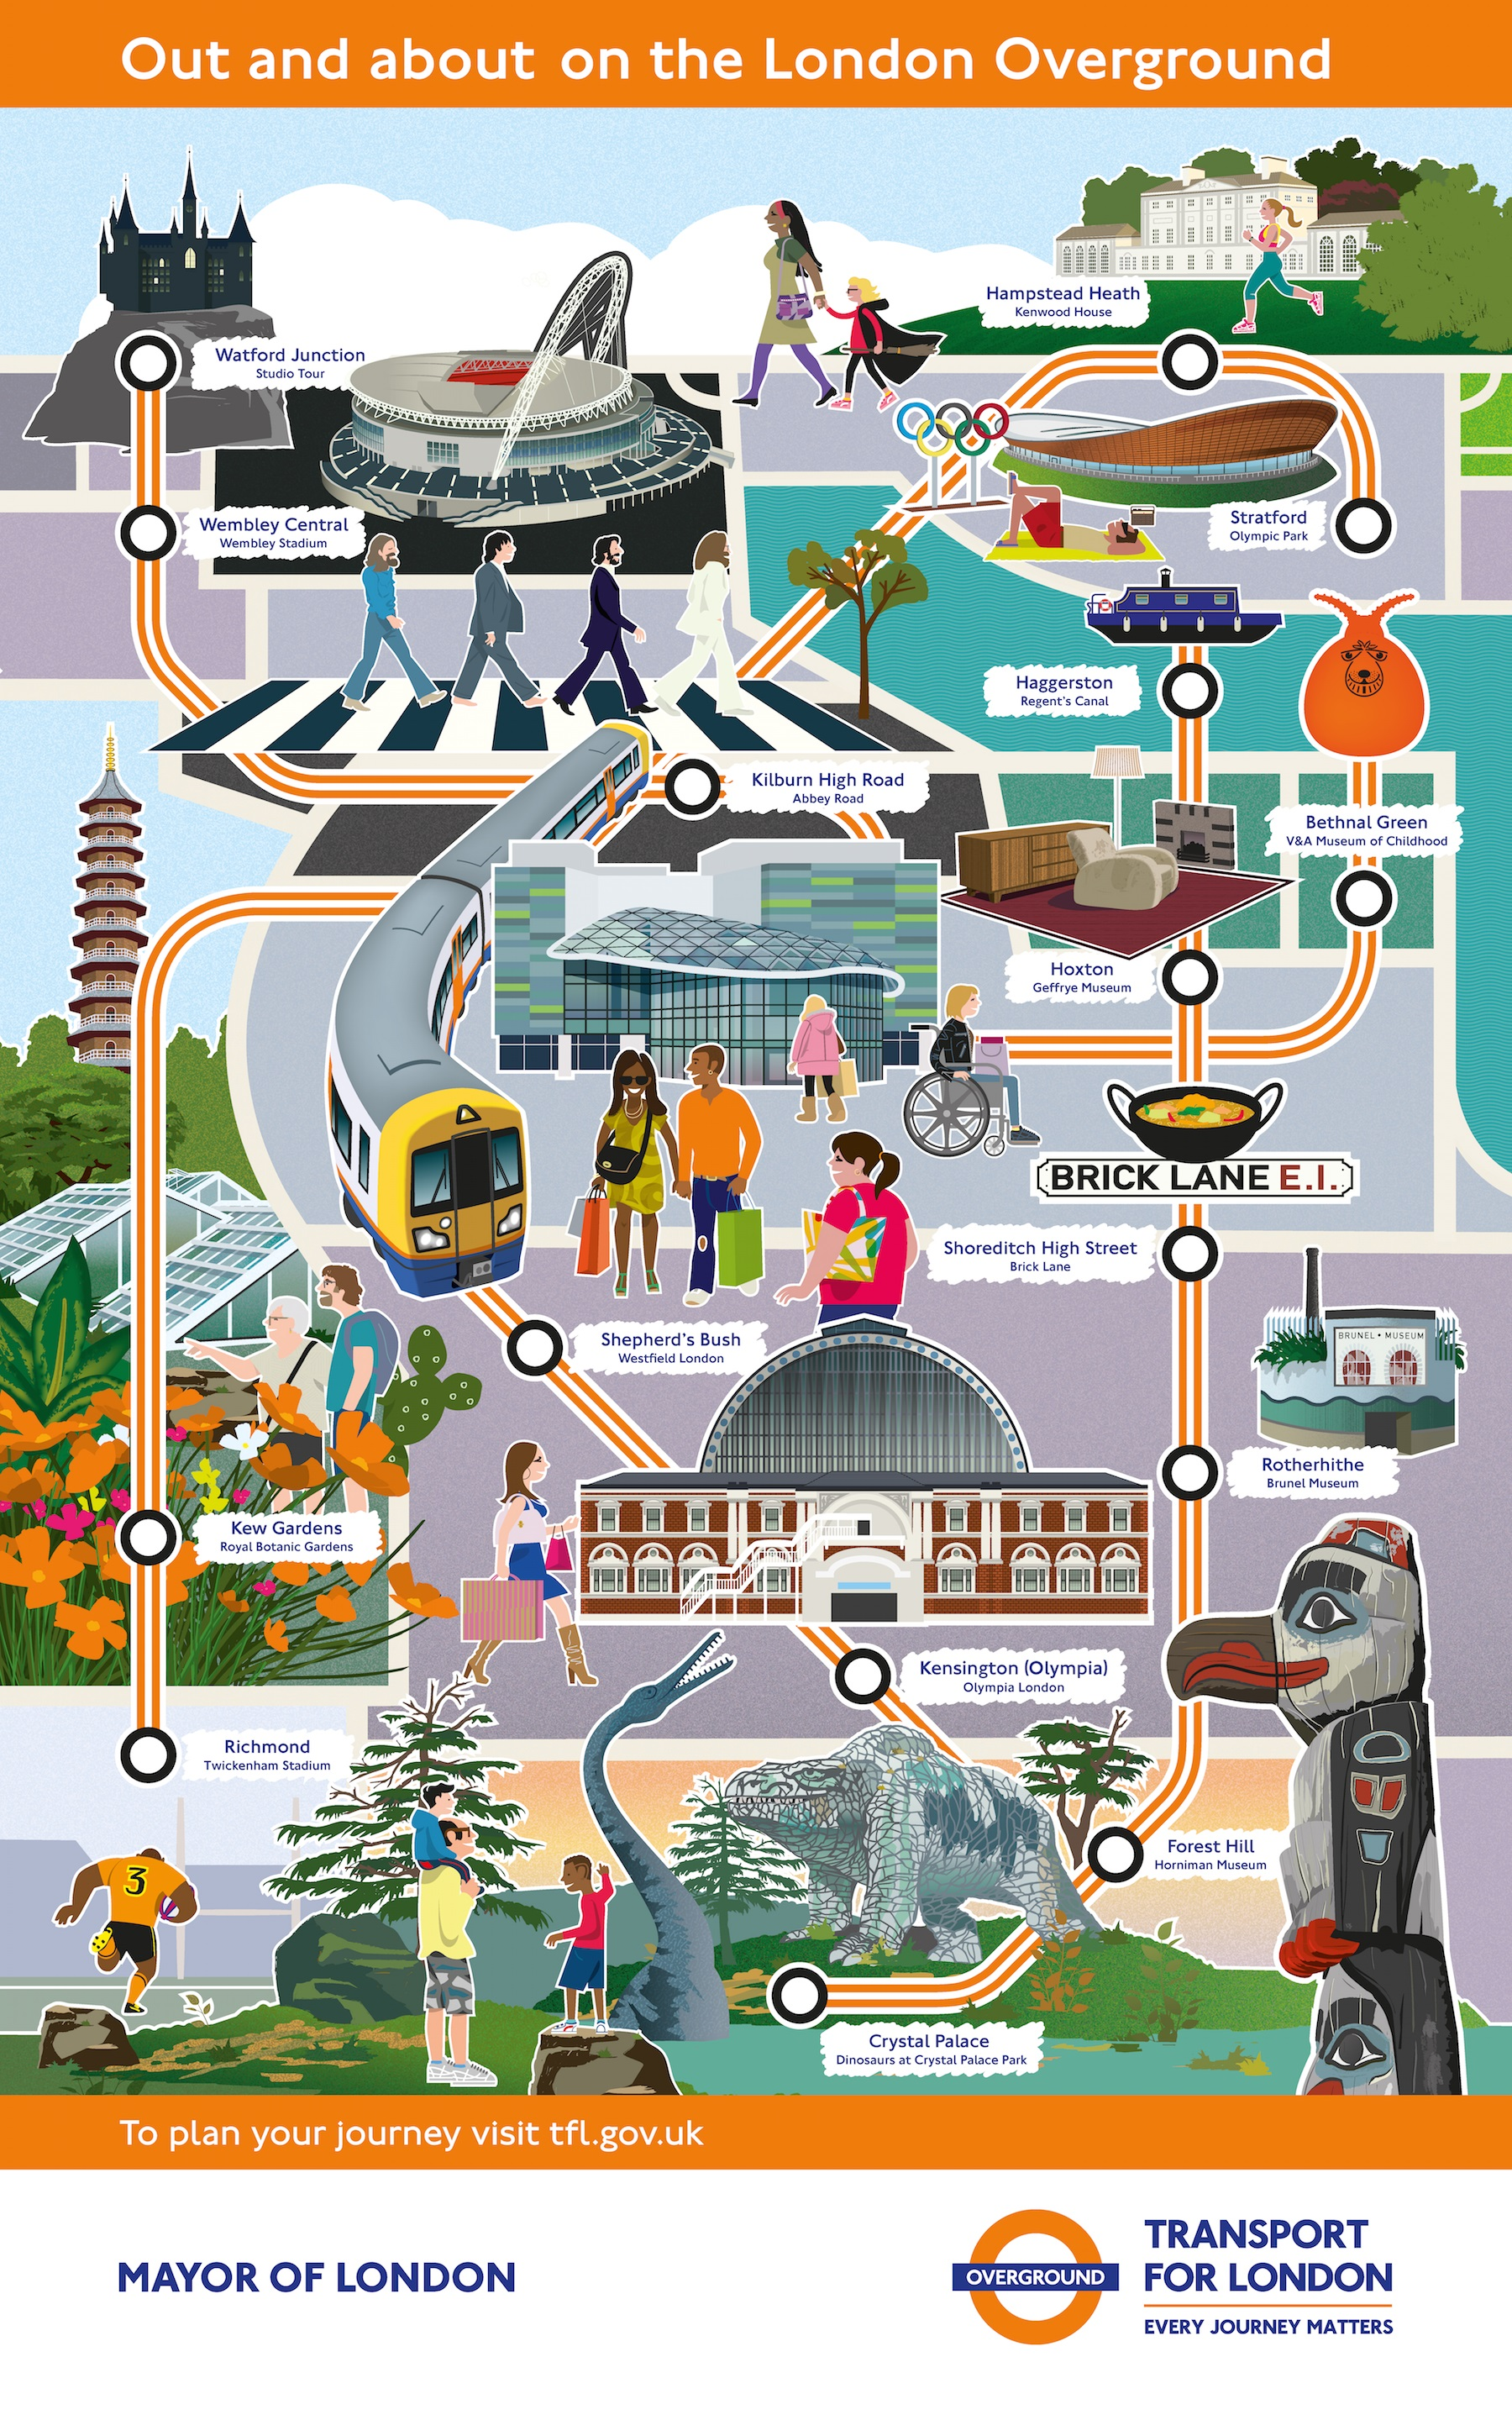 Out and about on the London Overground